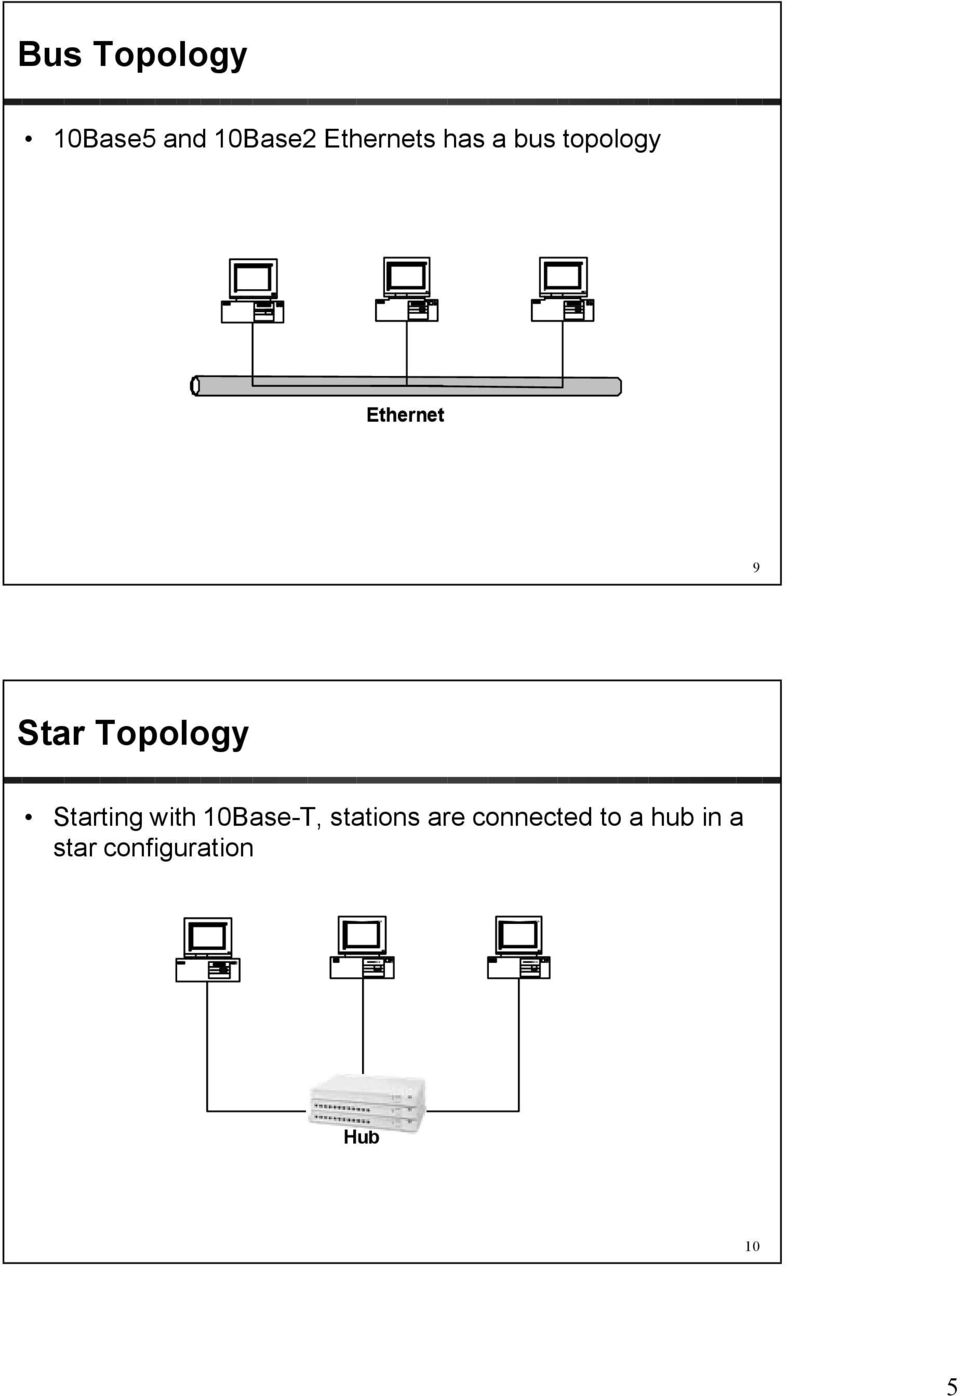 Starting with Base-T, stations are